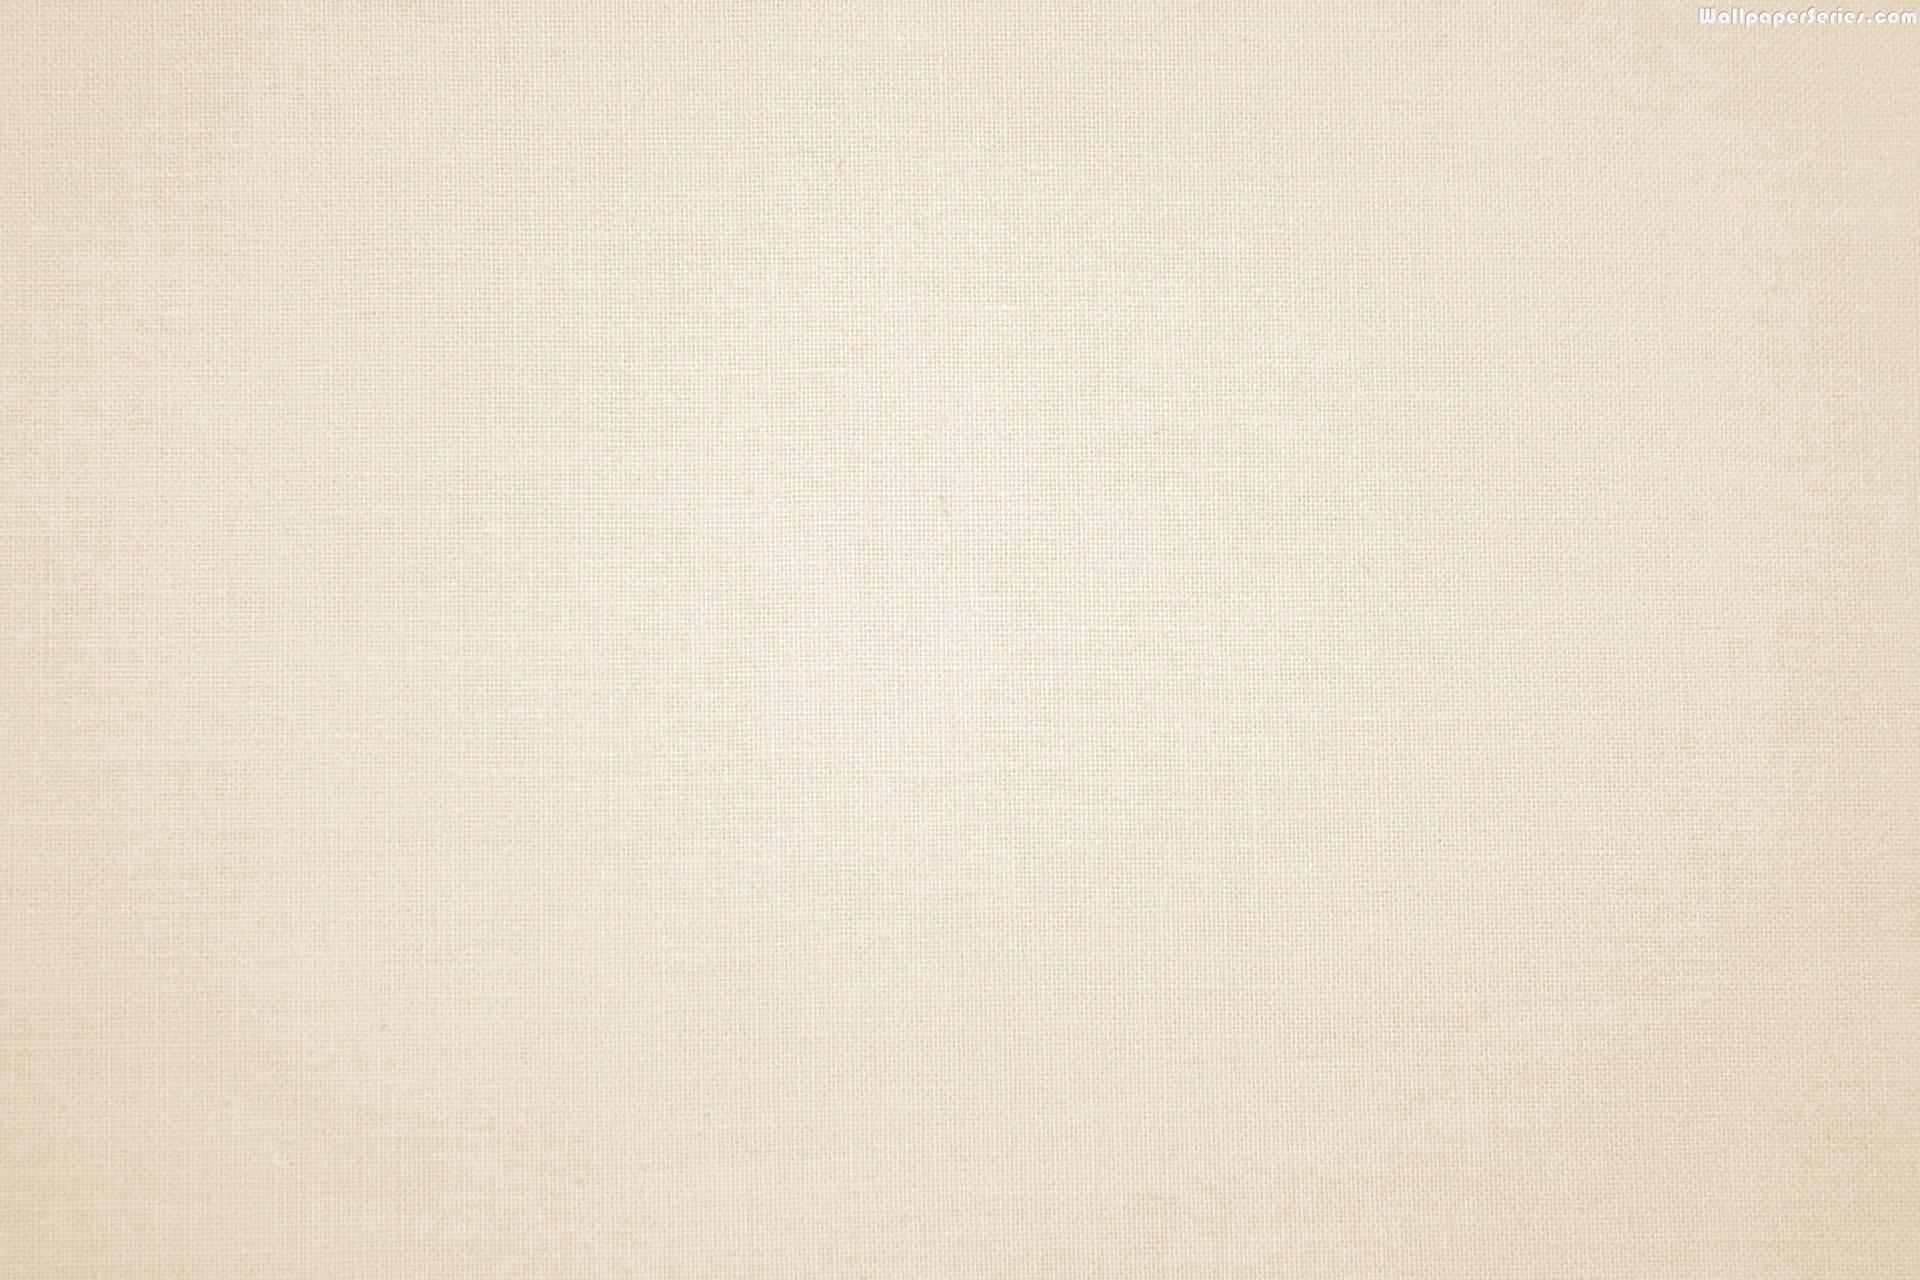 Beige-Light-Creamy-Wallpaper